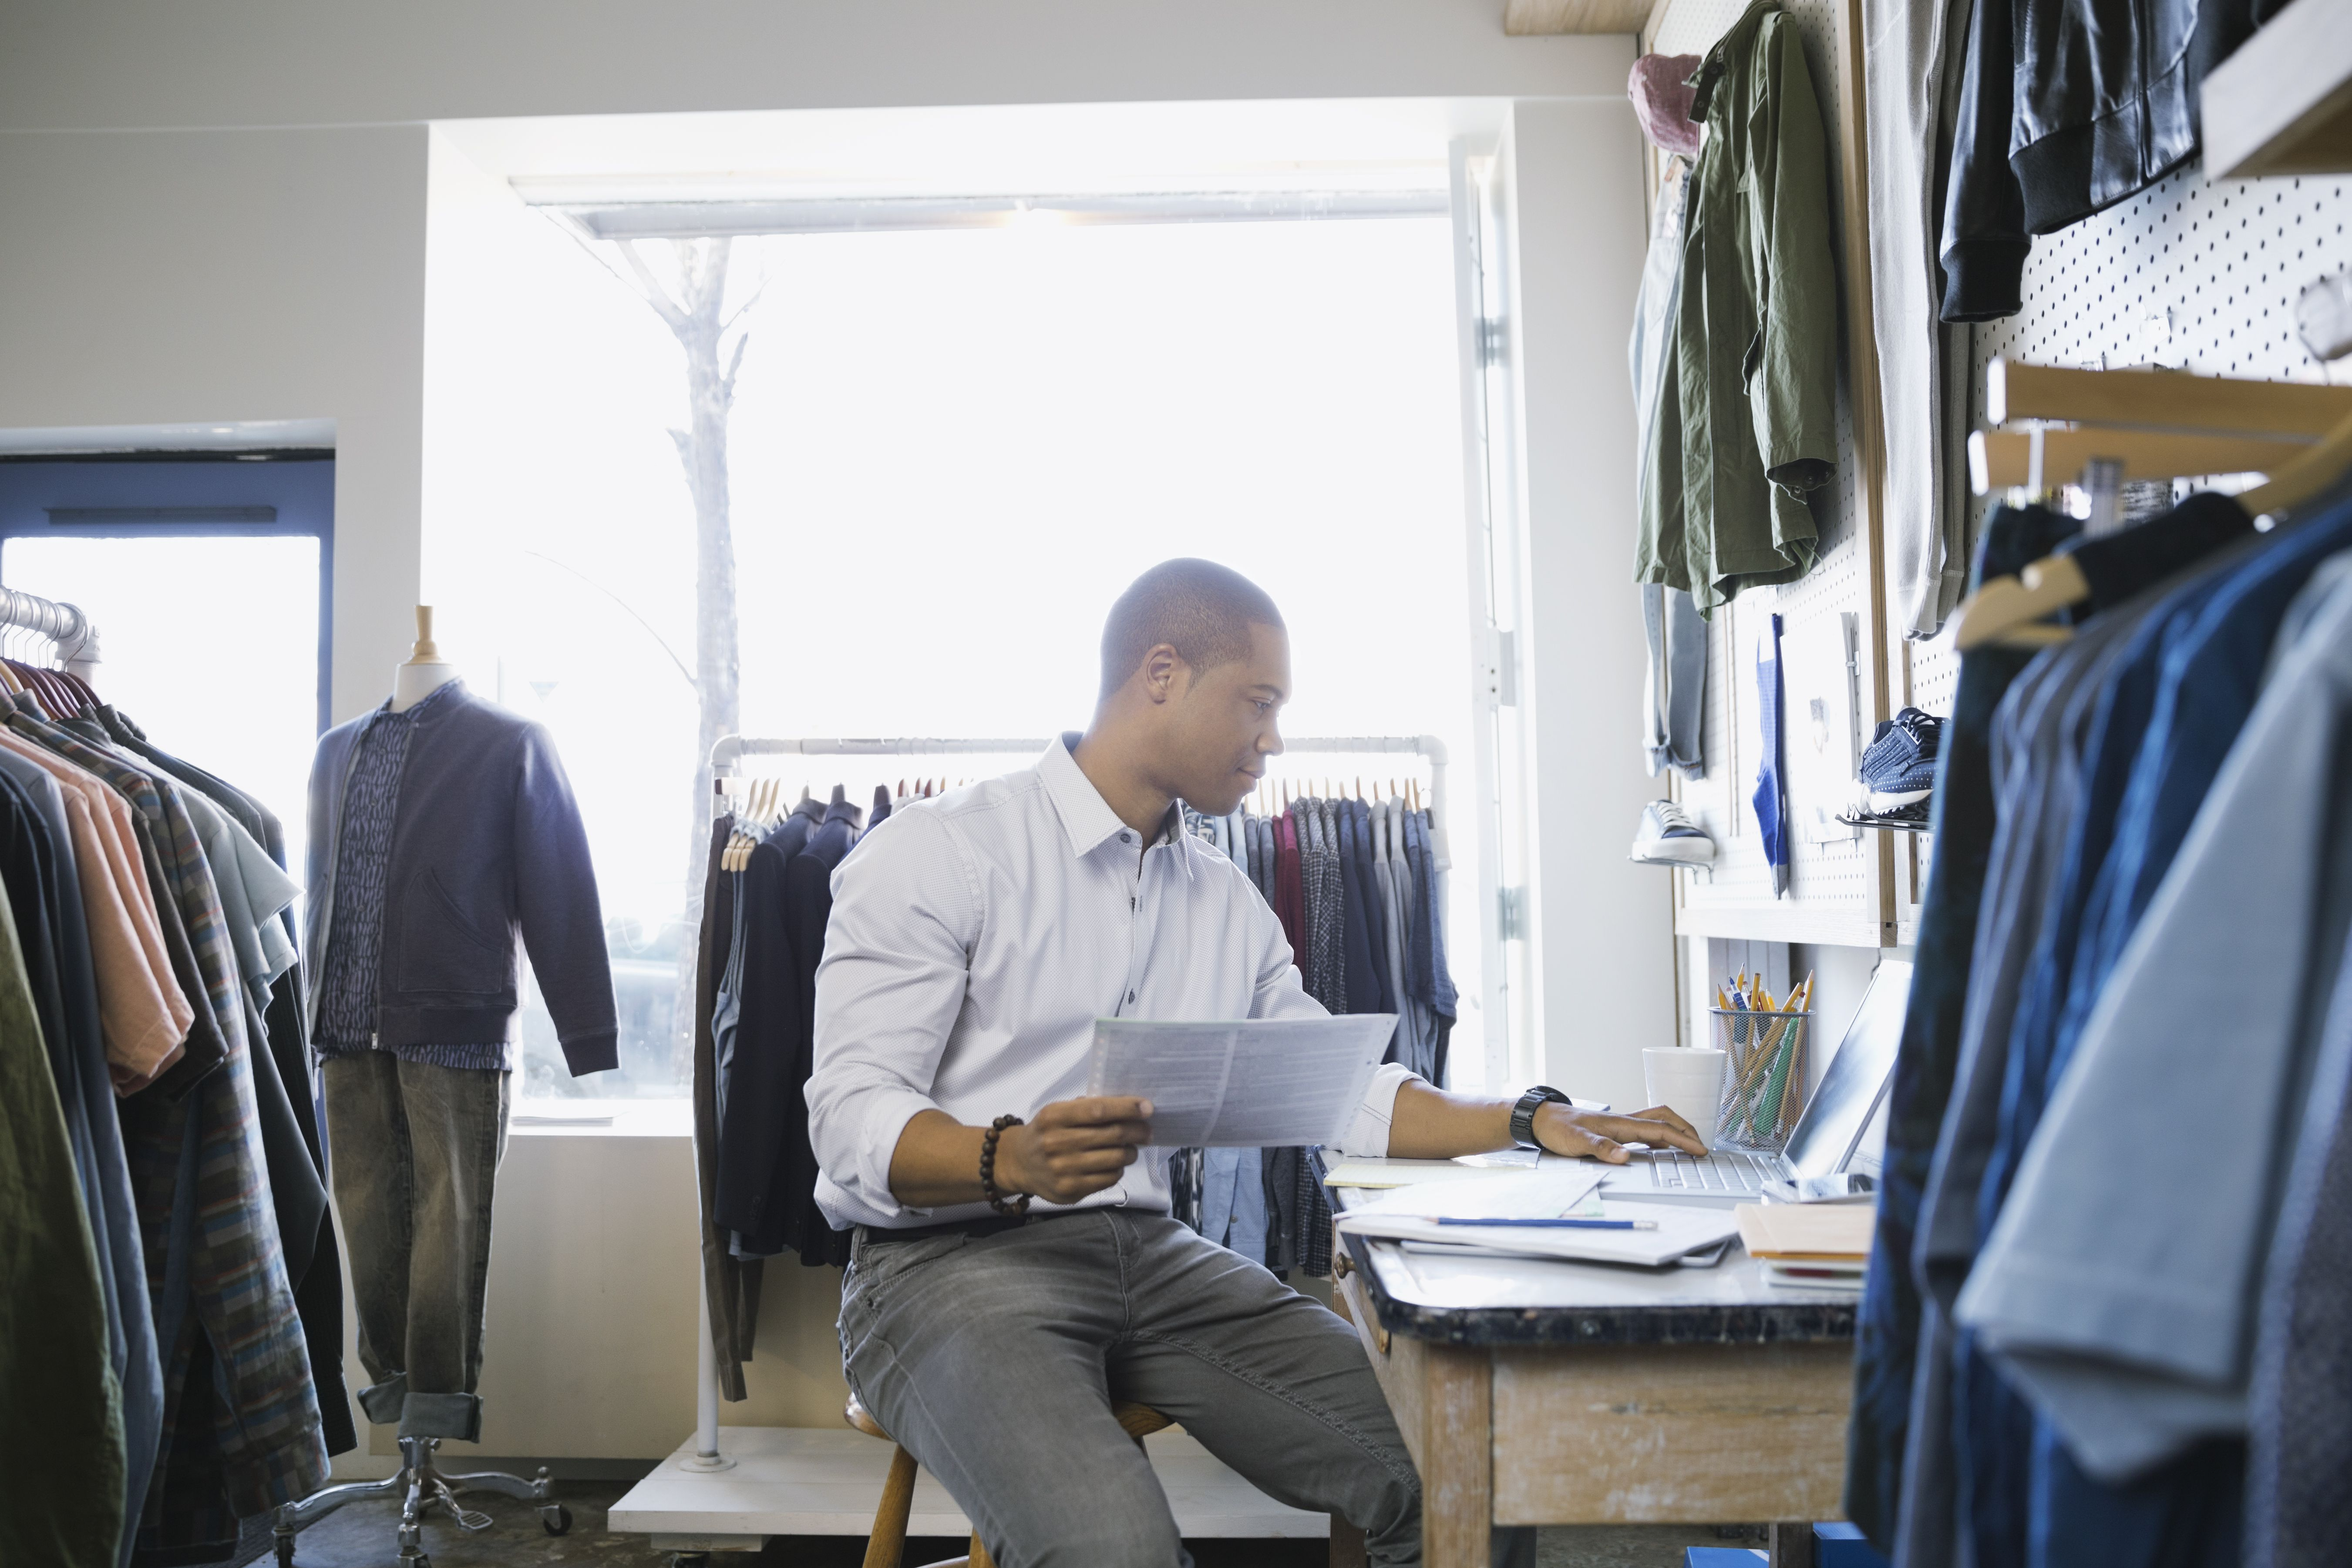 How to work in a clothing store